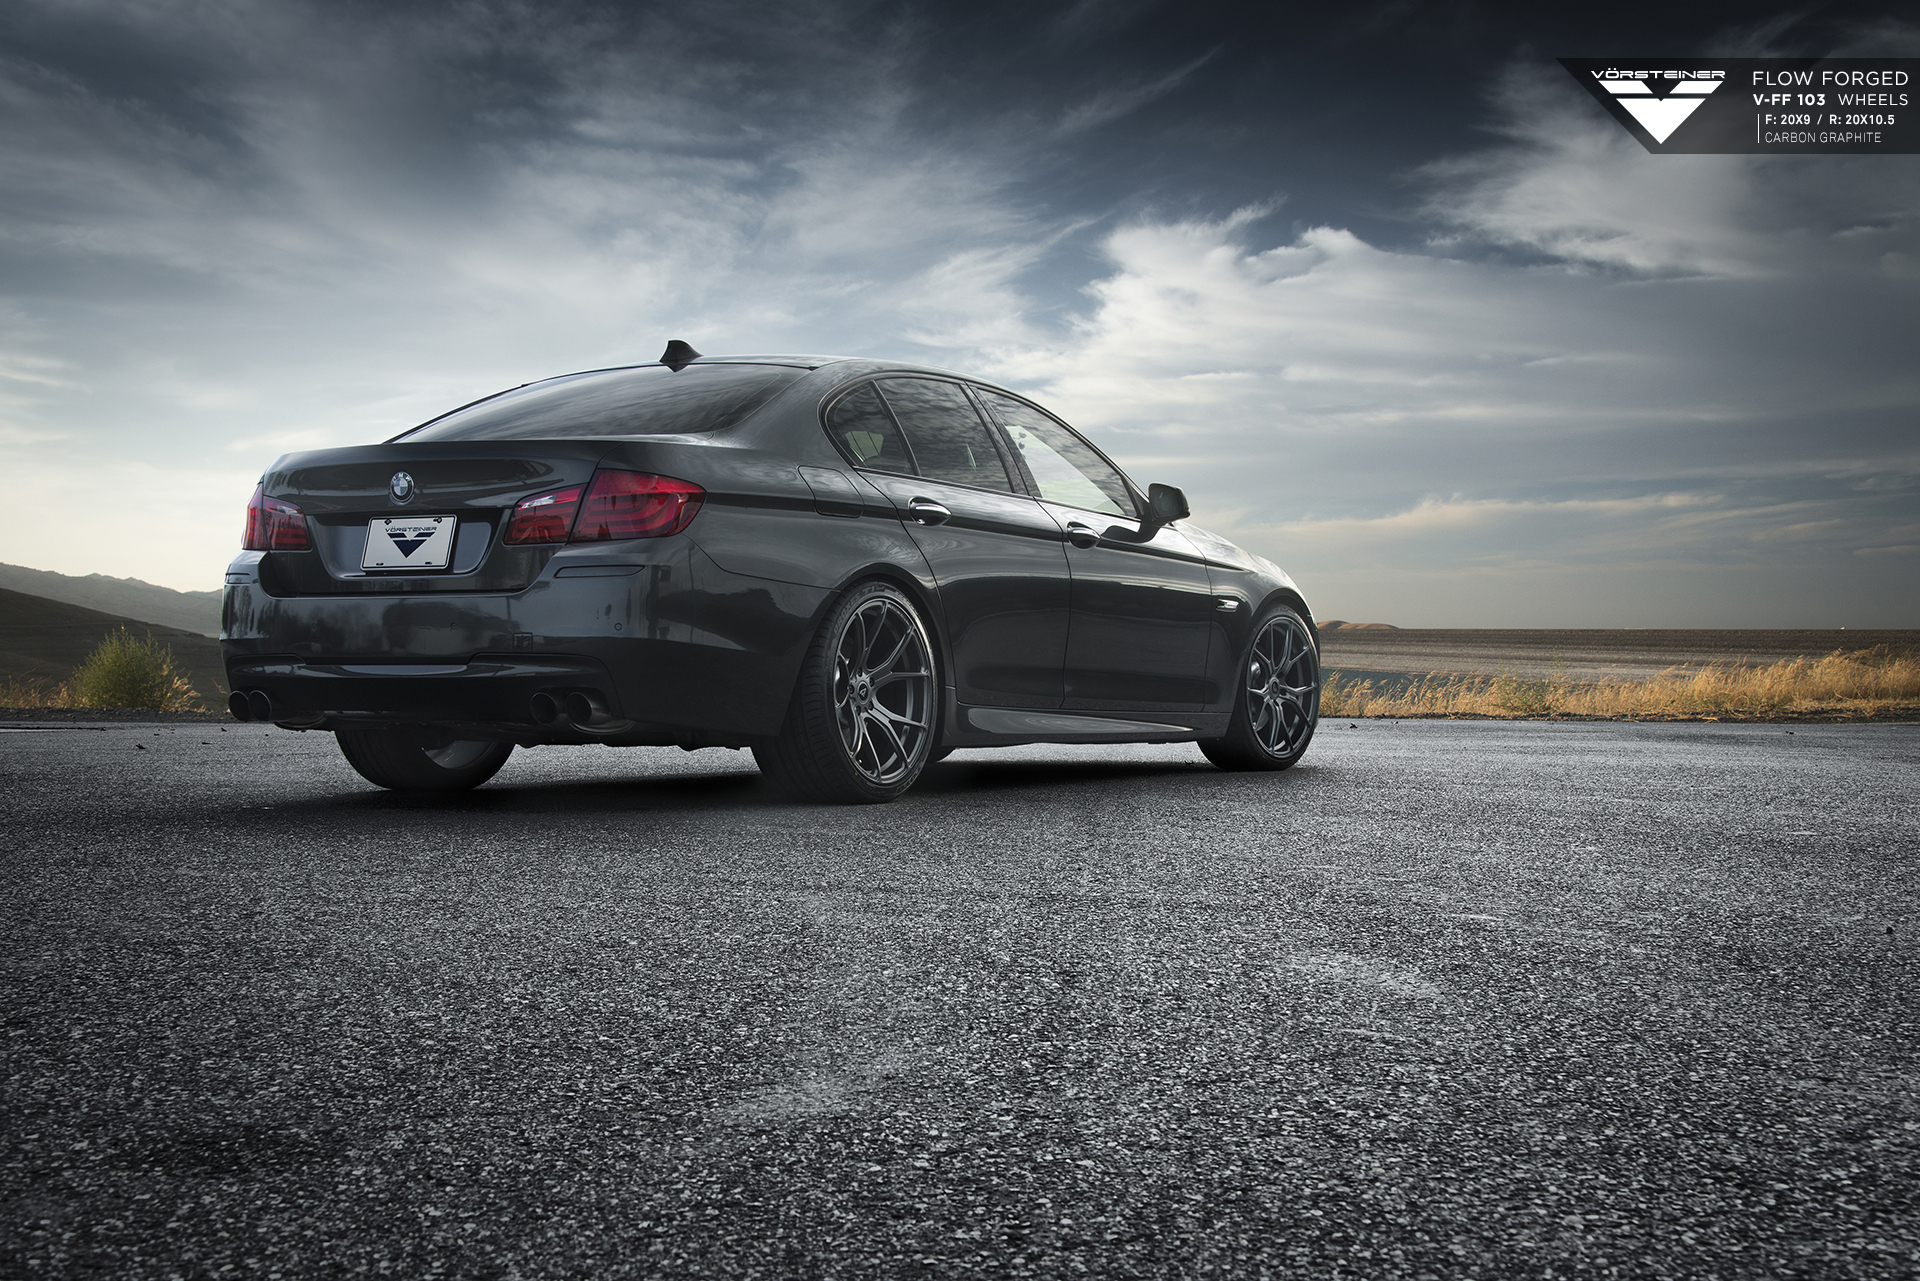 Bmw F10 5 Series On Vorsteiner Flowforged Wheels